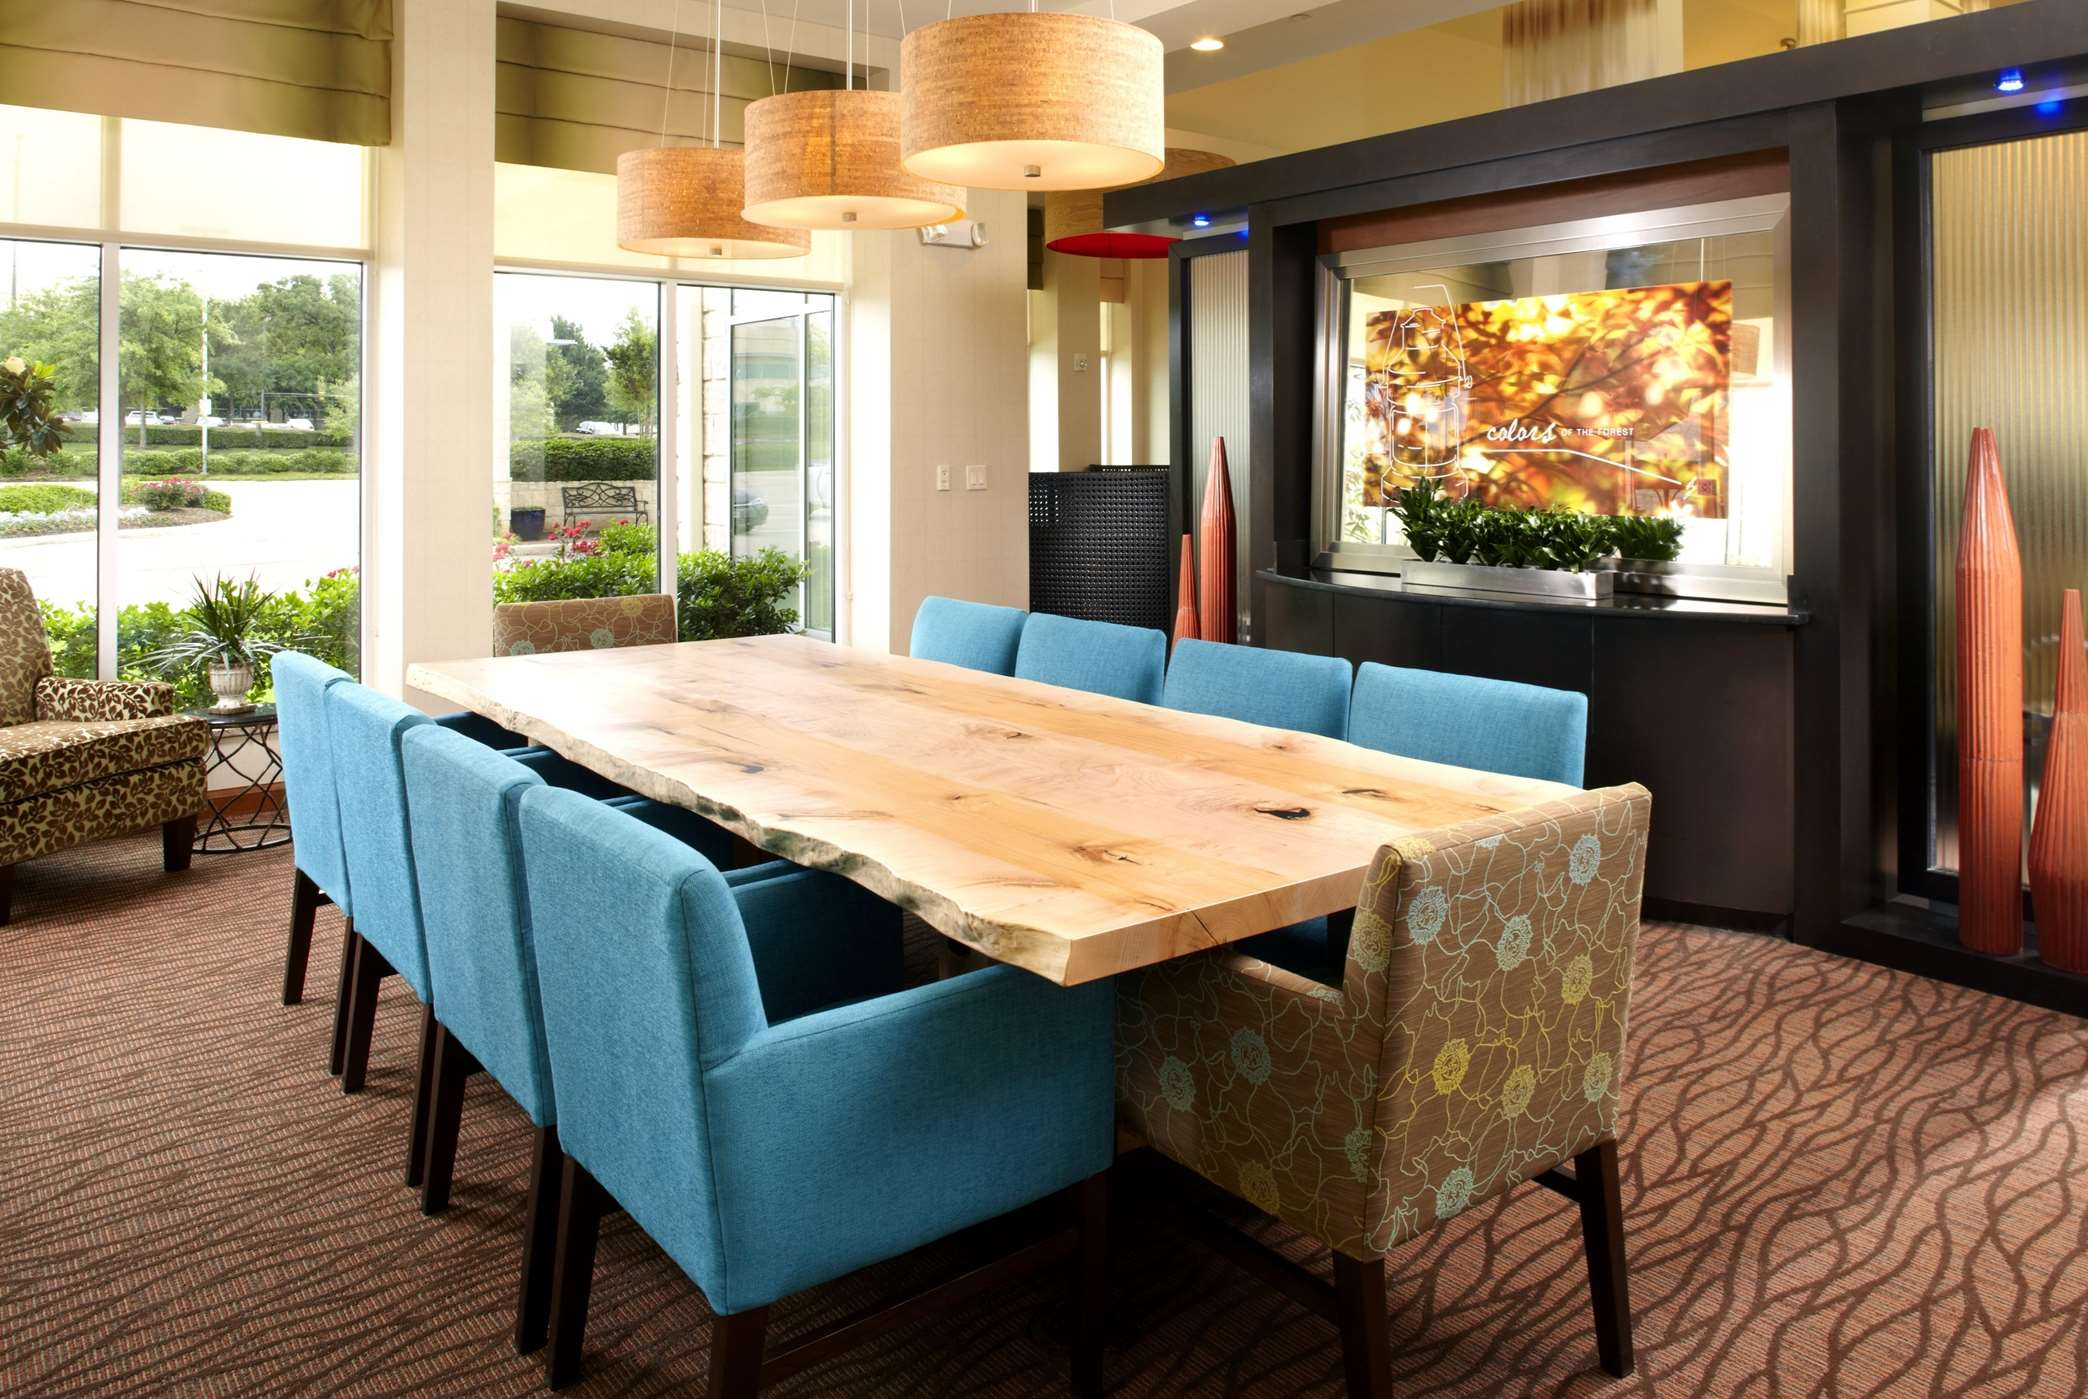 Hilton Garden Inn Dallas/Arlington image 32